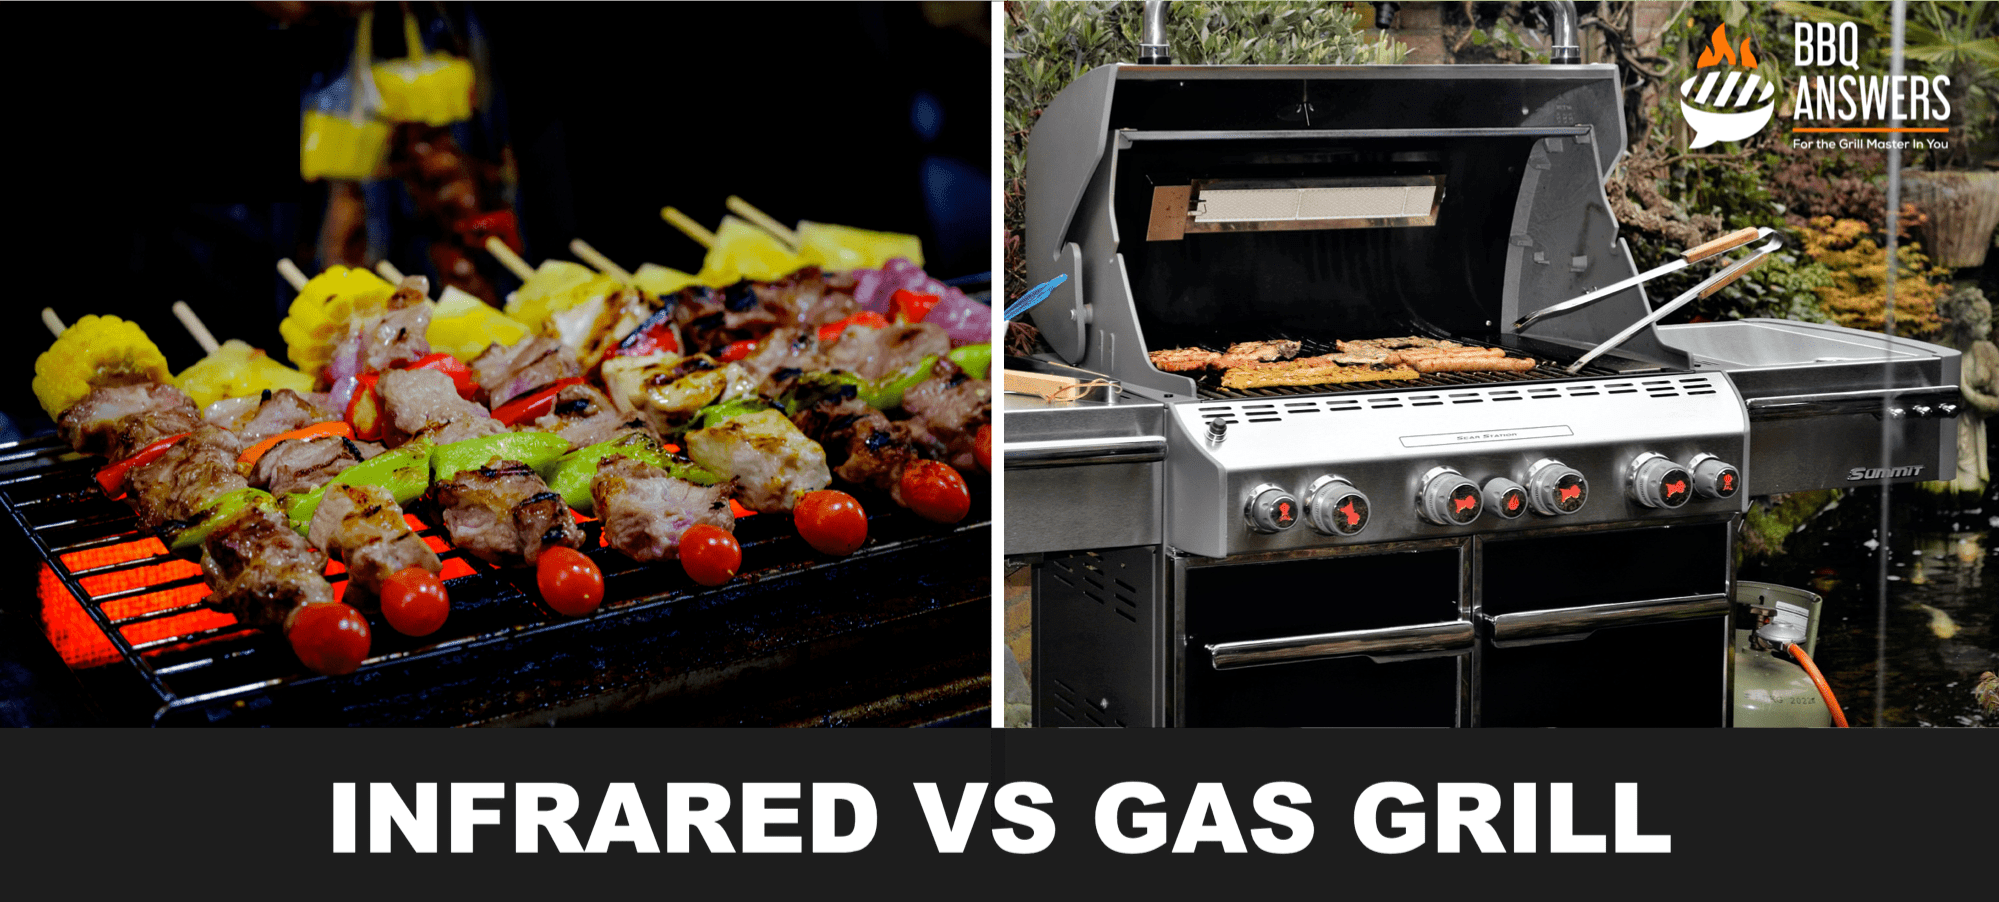 Infrared VS Gas Grill   BBQanswers